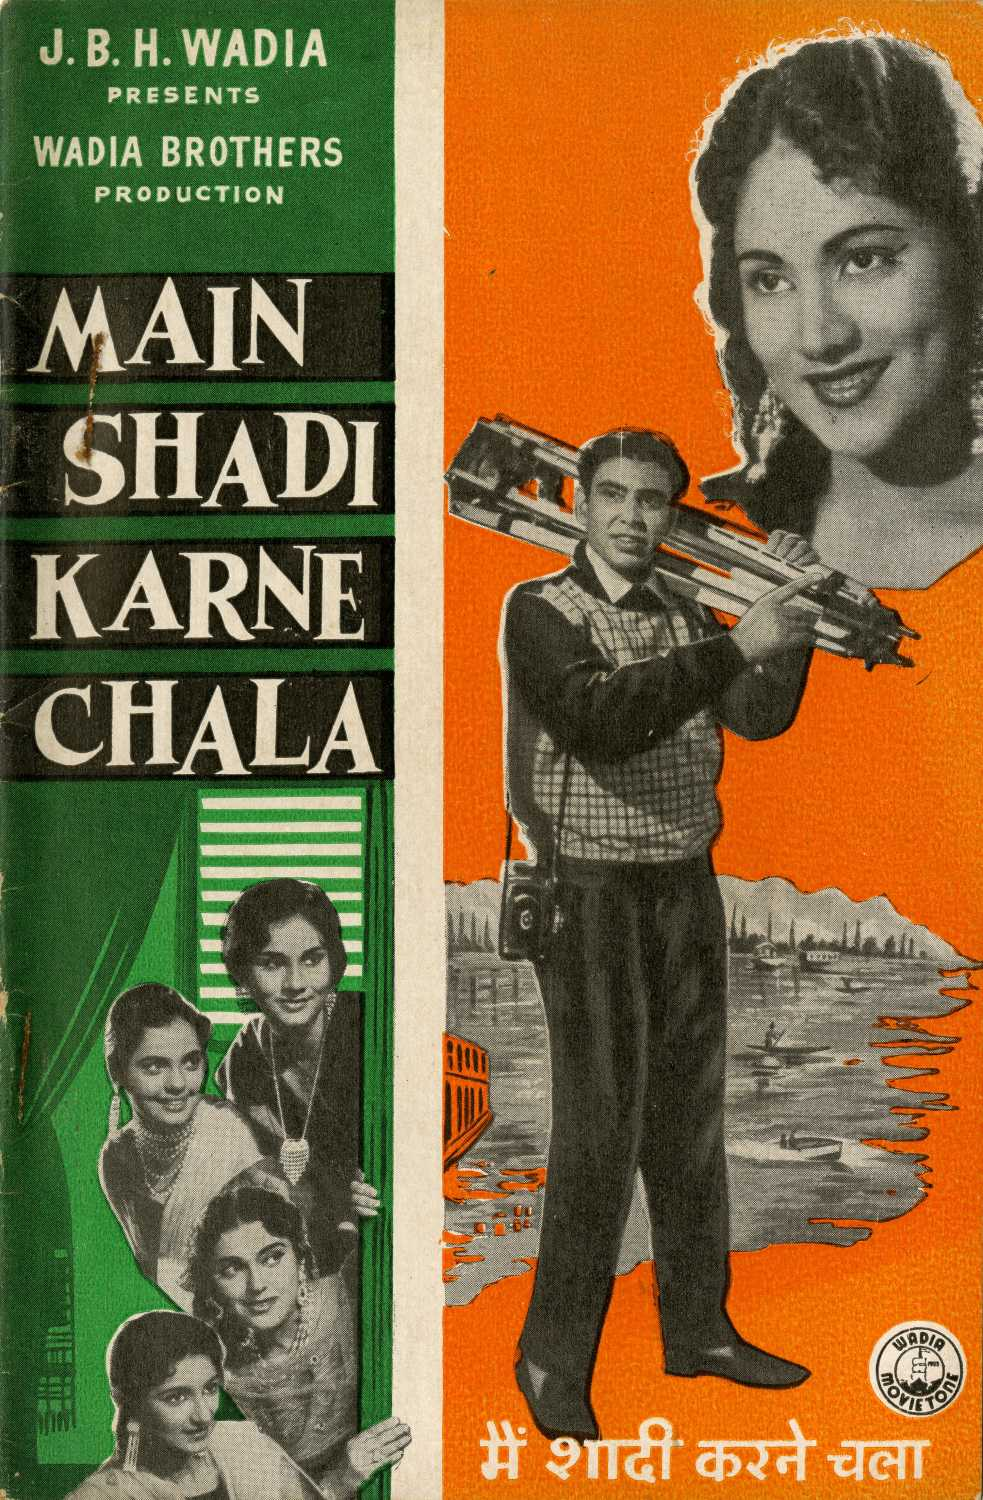 Main Shadi Karne Chala Movie Poster